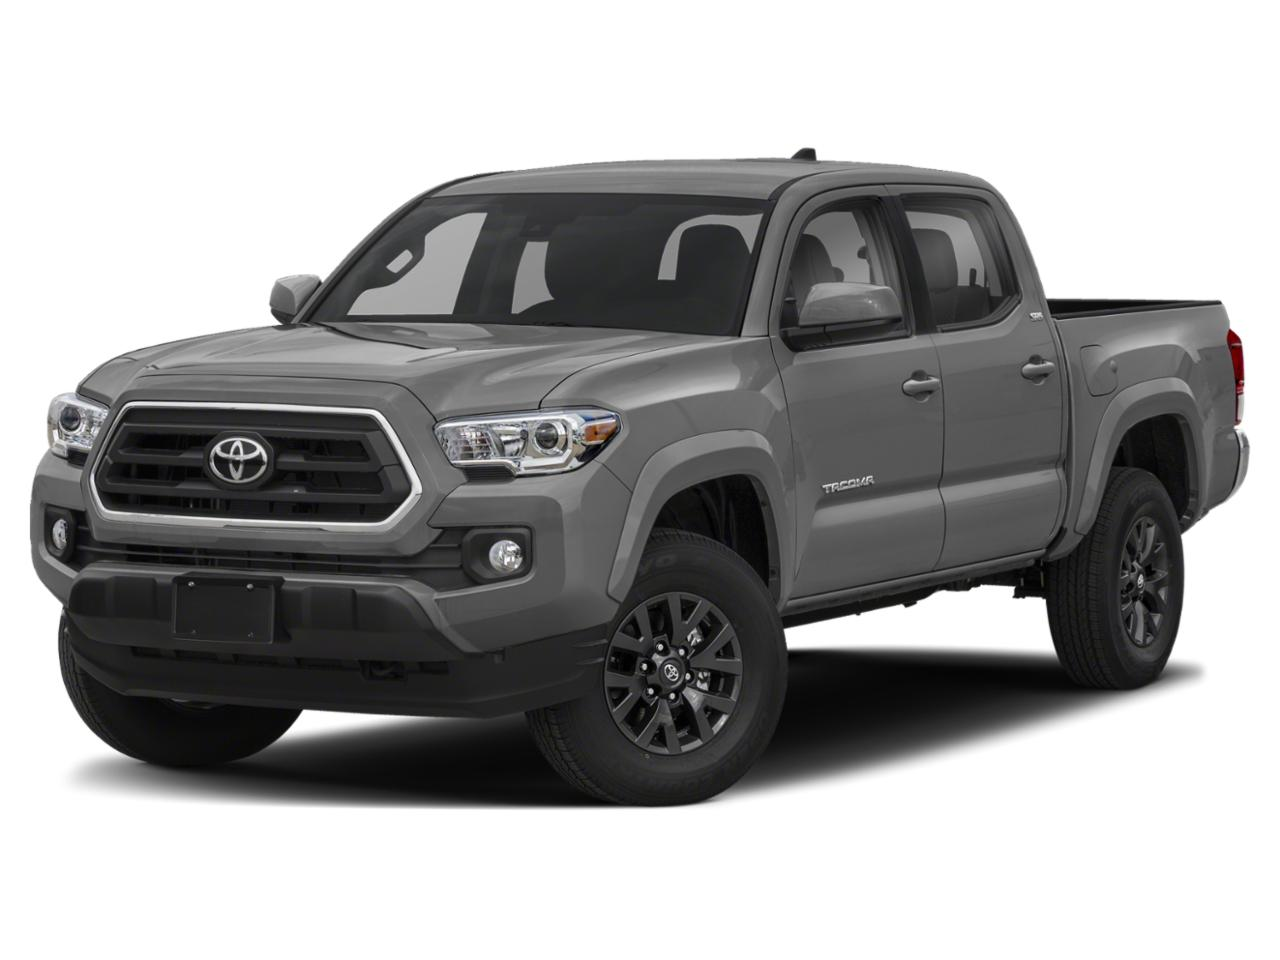 2020 Toyota Tacoma 2WD Vehicle Photo in Fort Worth, TX 76116